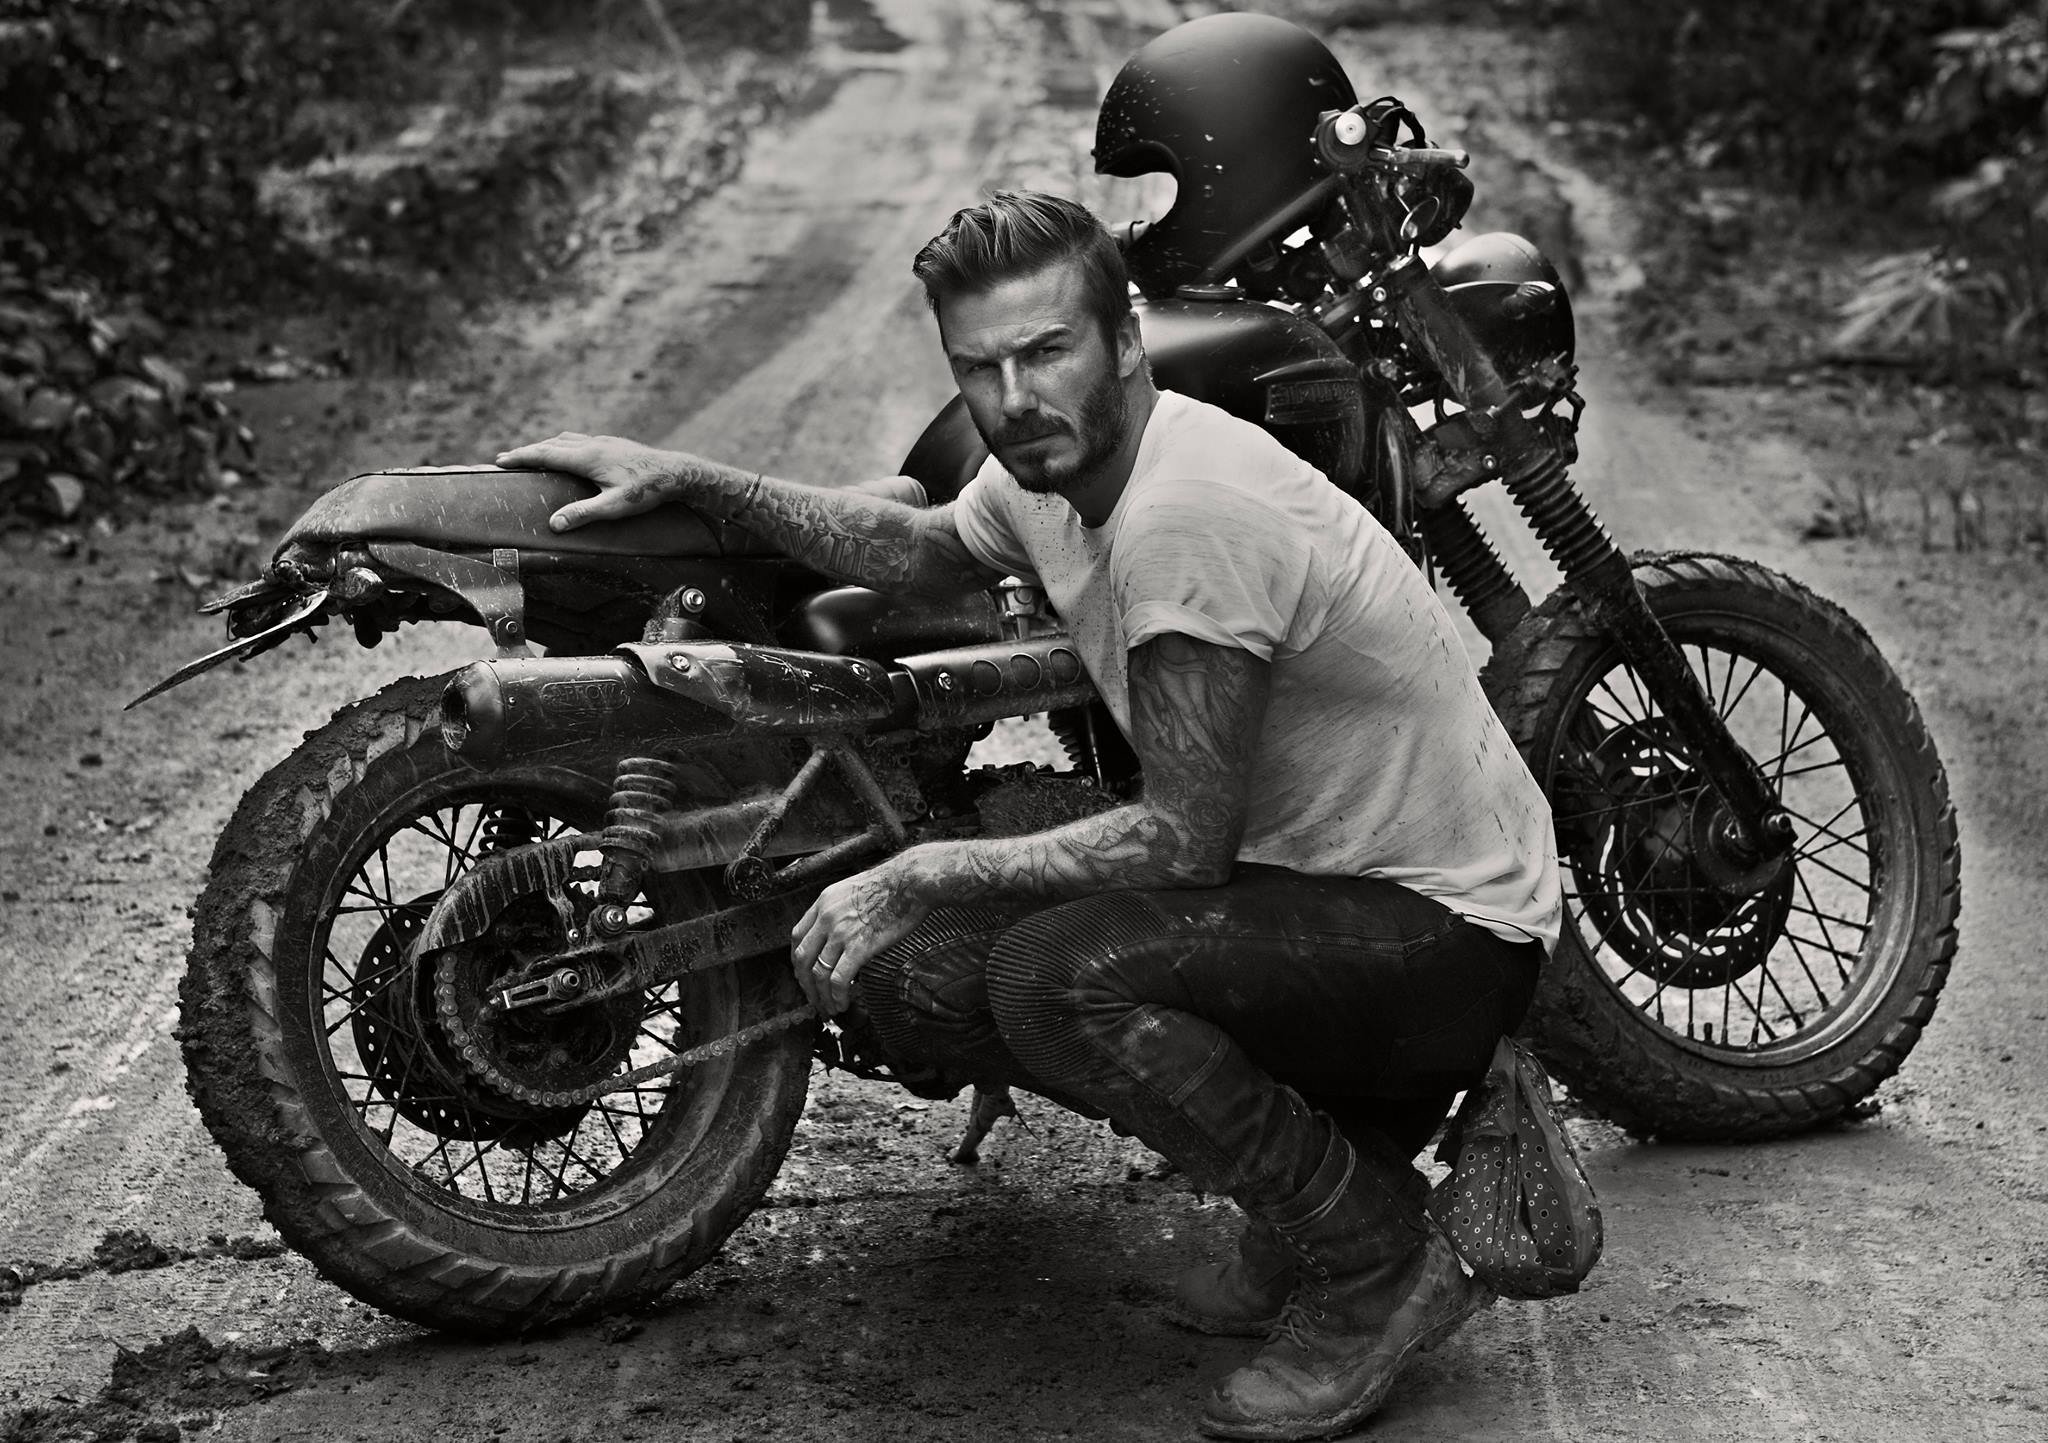 David Beckham to visit Singapore as part of AIA Healthy Living Tour